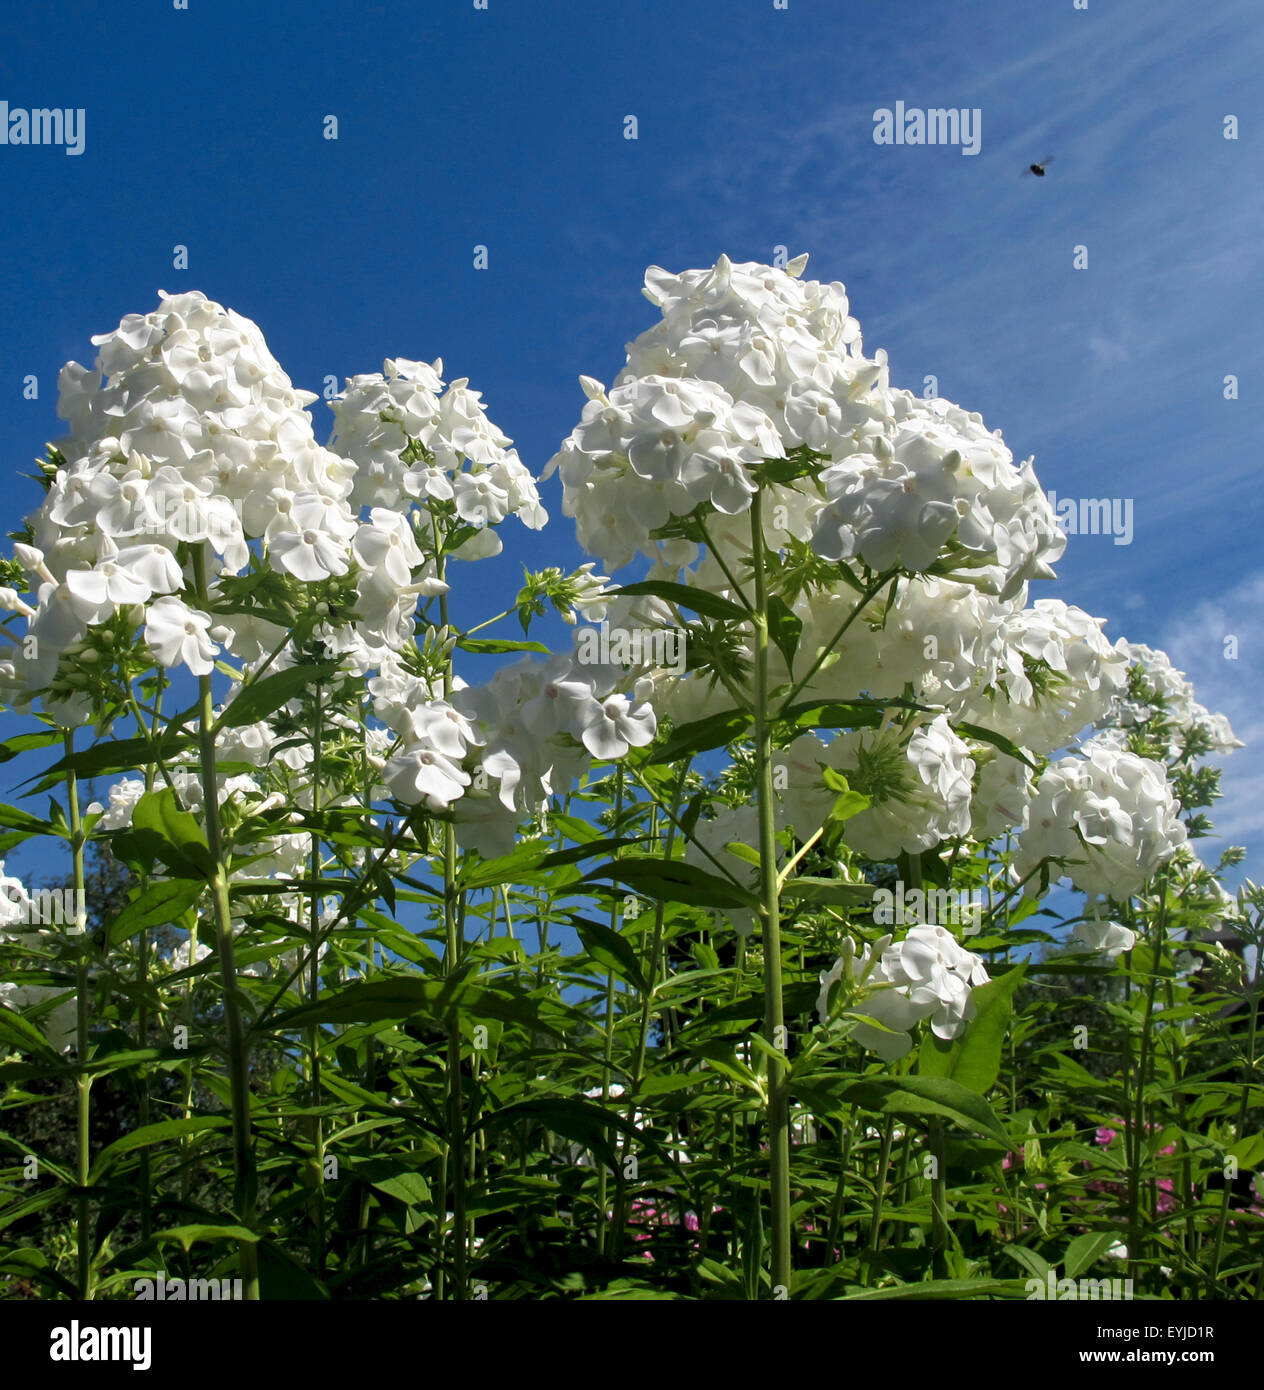 Tall white flowers stock photos tall white flowers stock images tall white flowers against deep blue sky stock image mightylinksfo